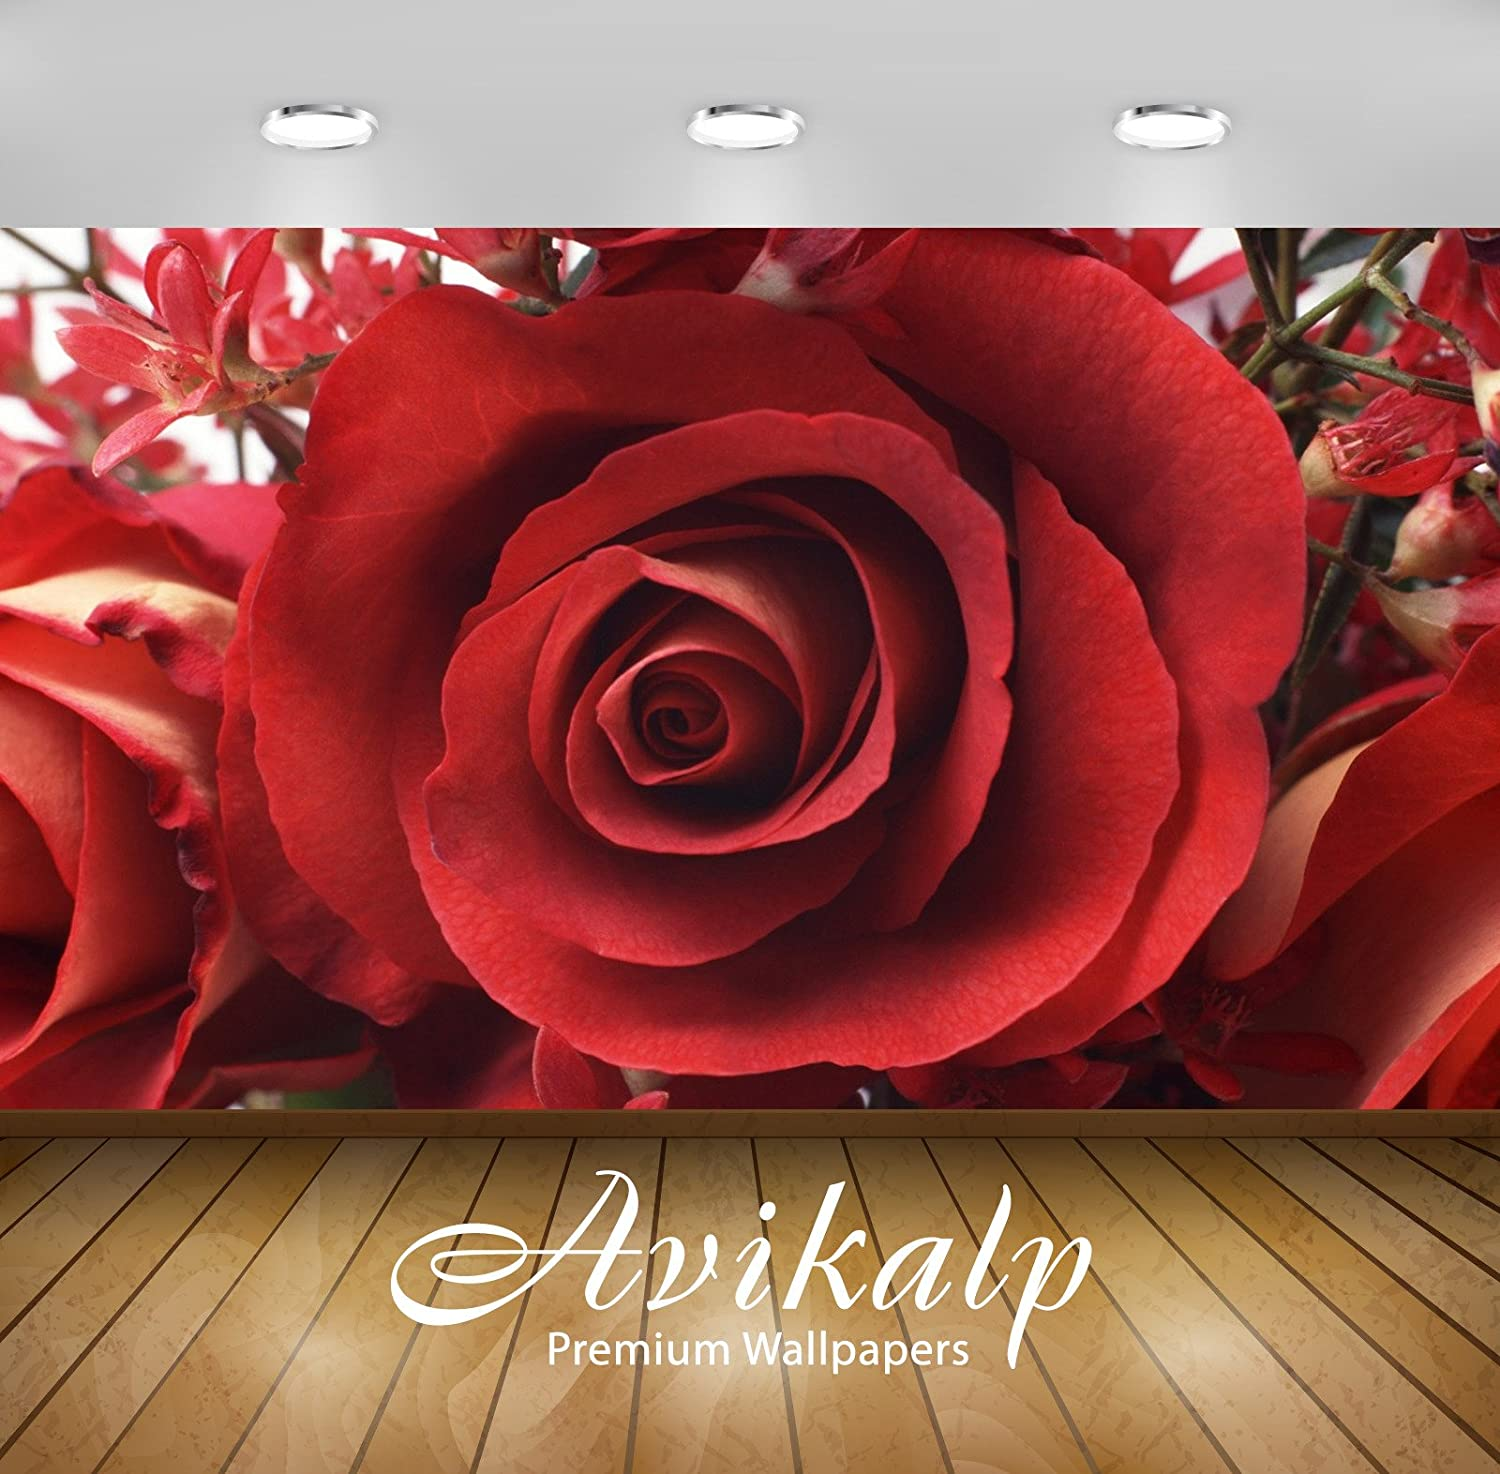 Buy Avikalp Exclusive Awi1917 Beautiful Rose Flower Full HD 3D Wallpaper (3  x 2 Feet) Online at Low Prices in India - Amazon.in